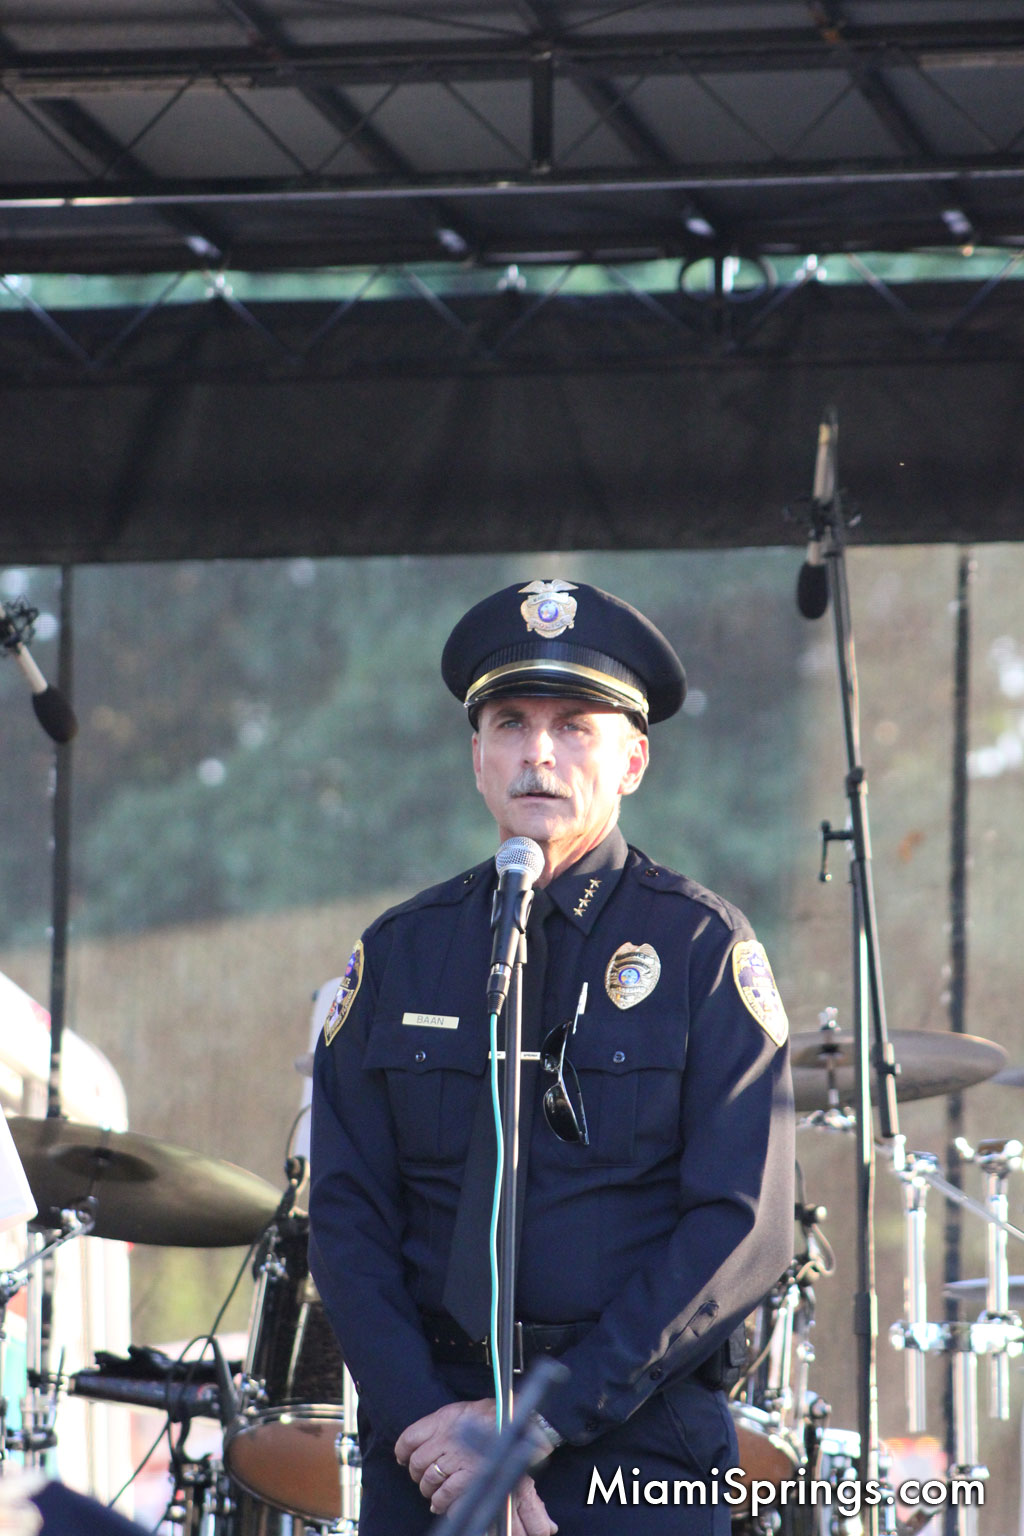 Miami Springs Police Chief Peter G. Baan